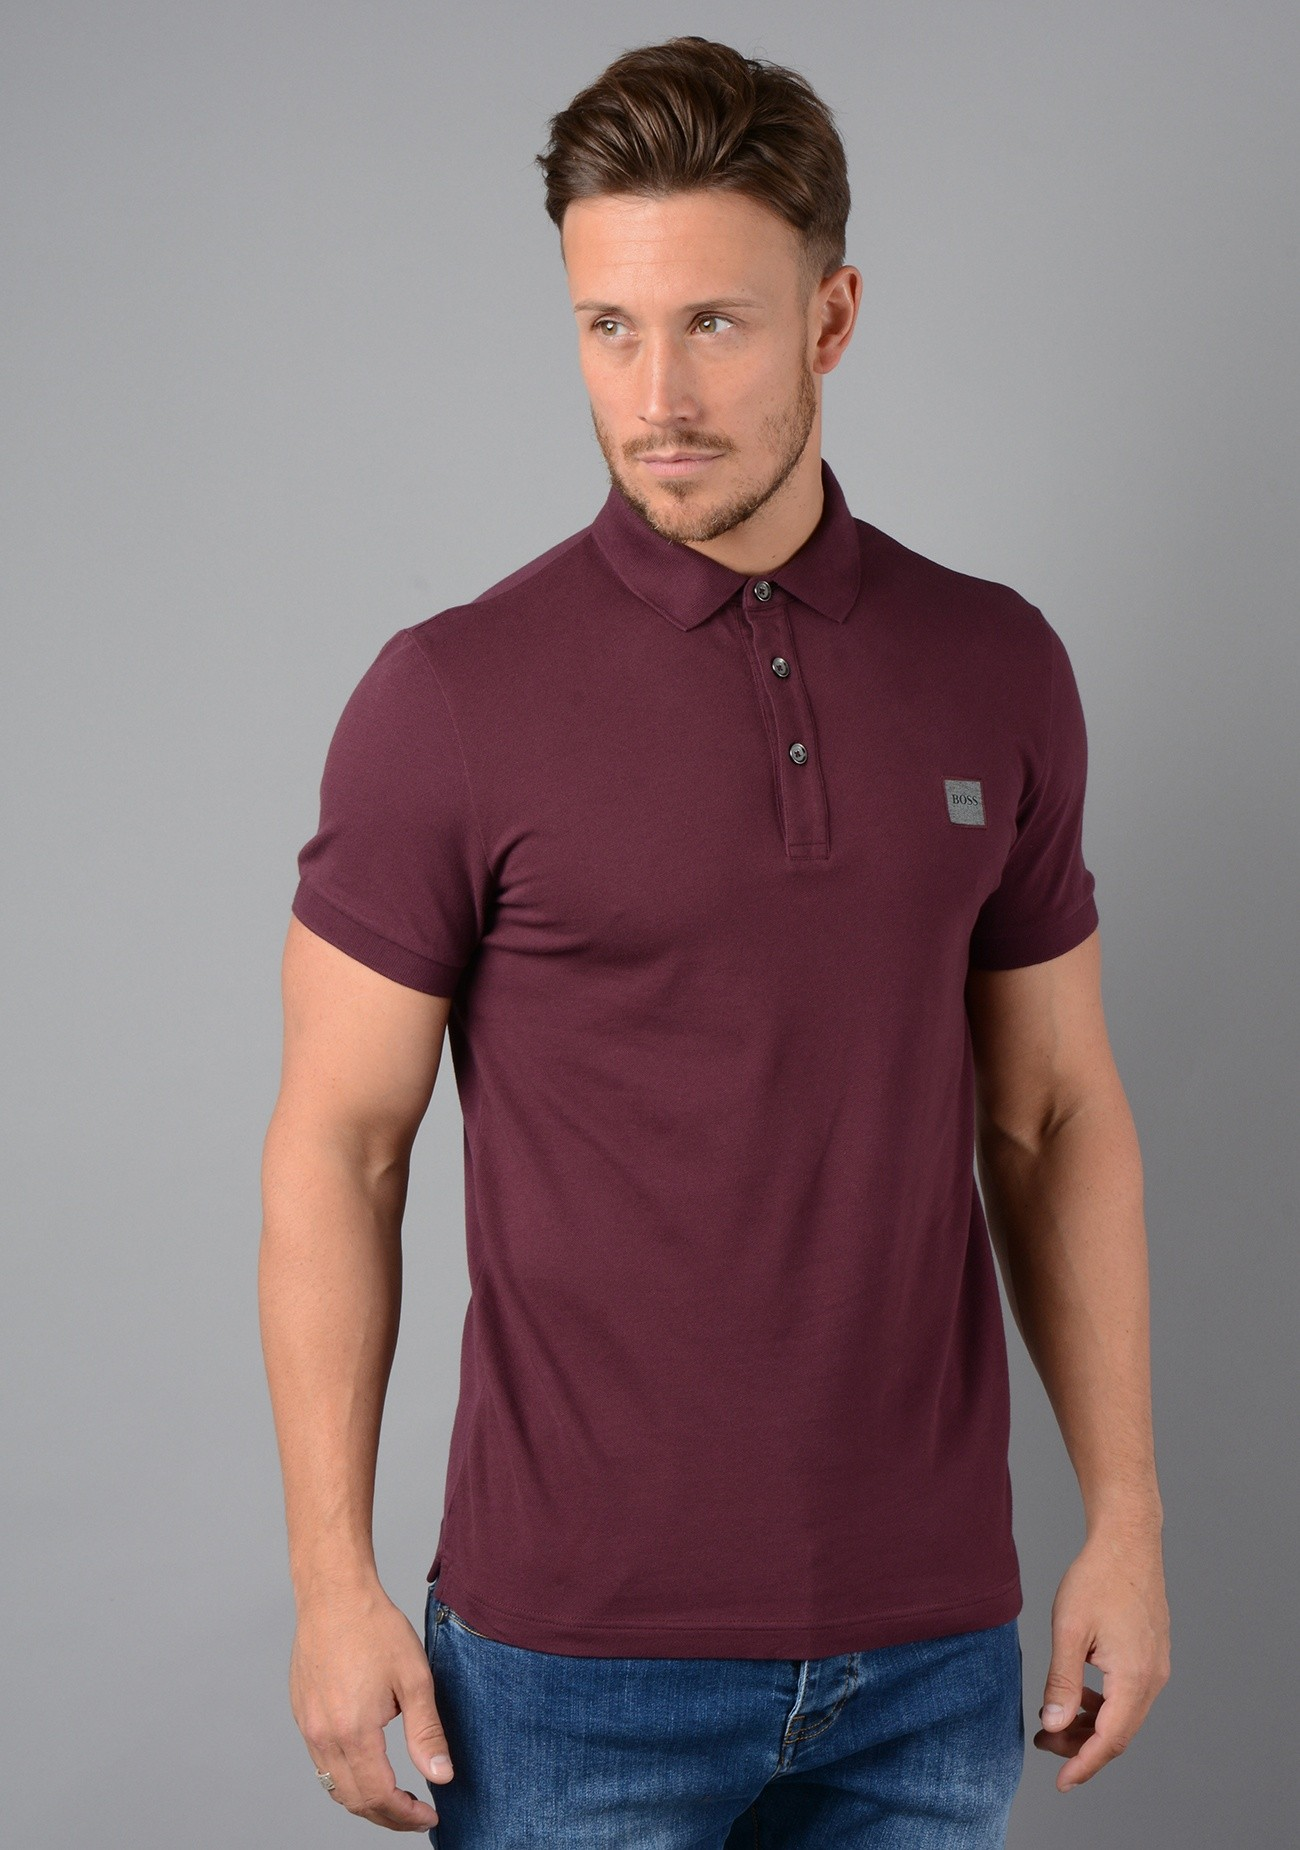 b11496f1 Hugo Boss Slim Fit Polo Shirt in Burgundy - My Outfit